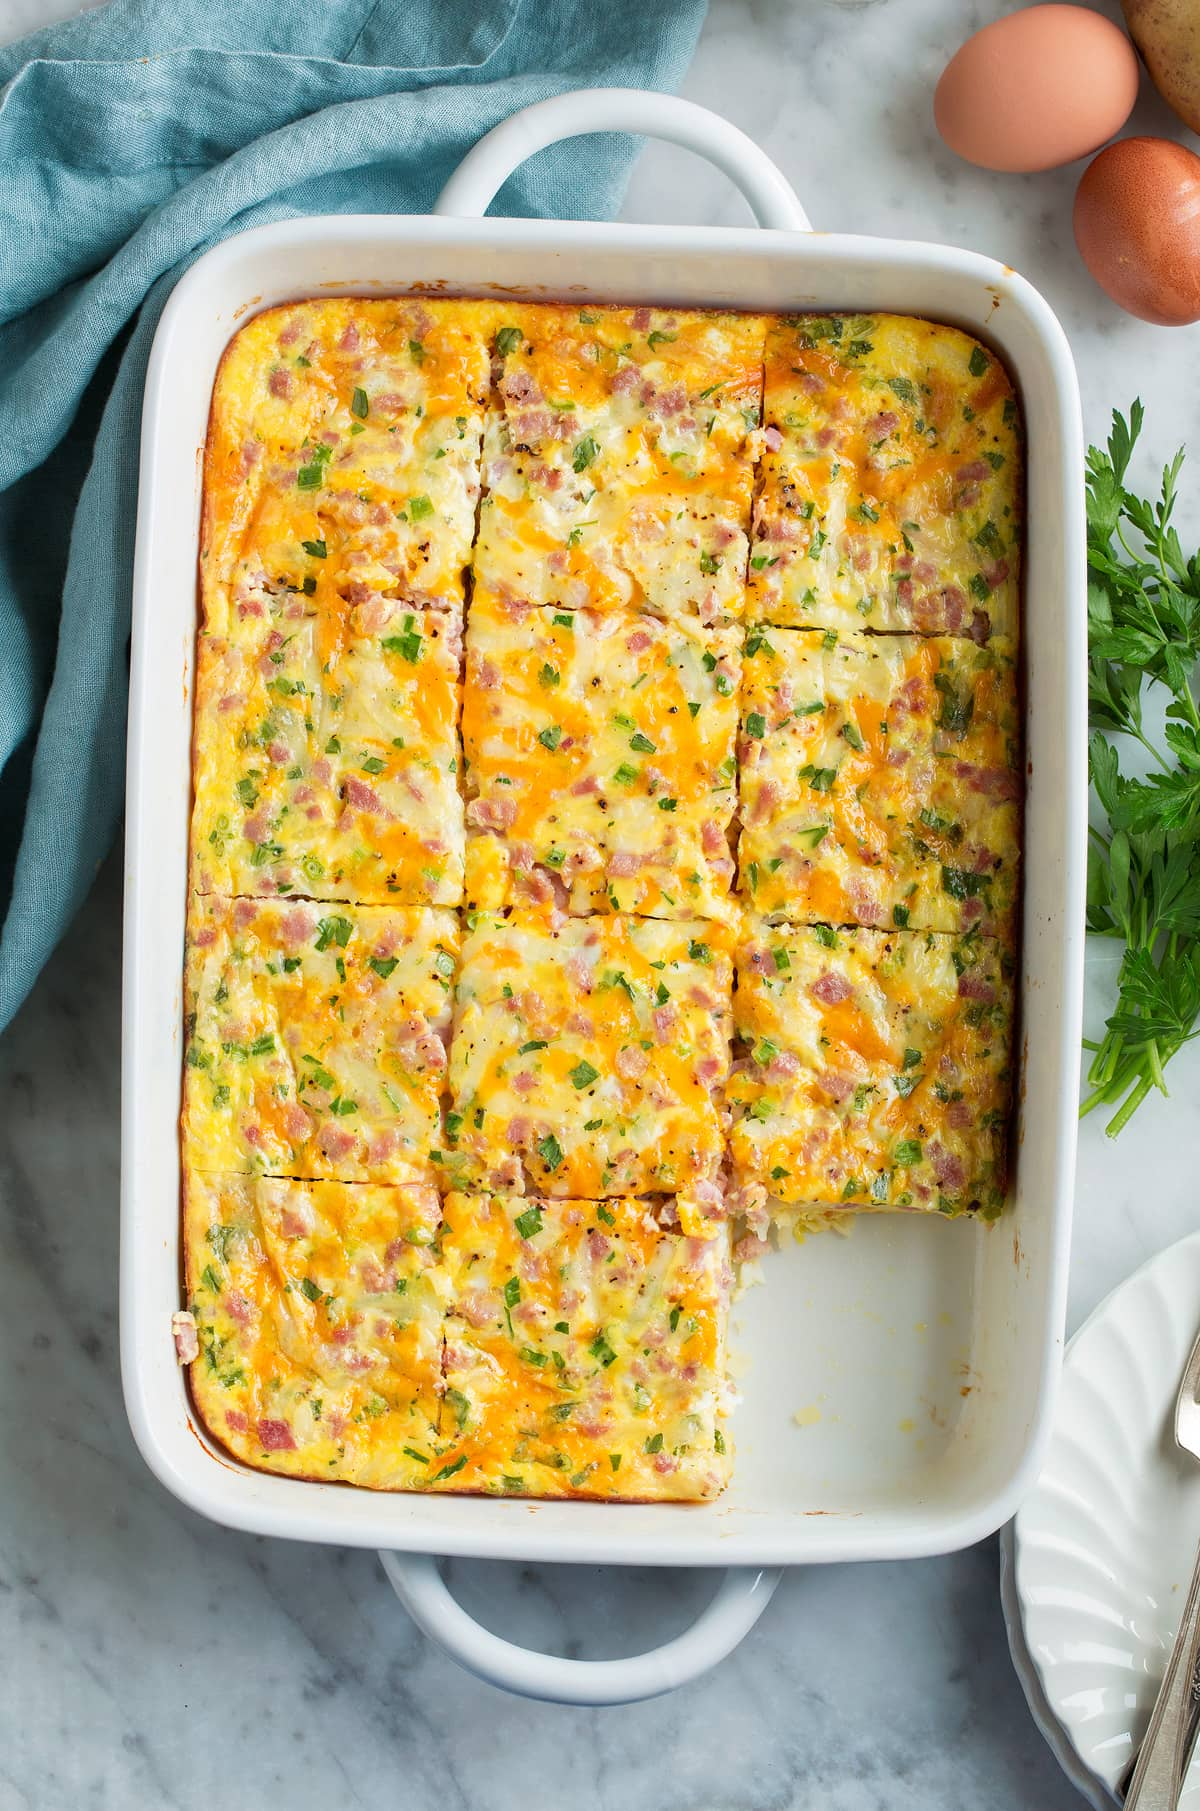 Overhead image of breakfast casserole in a baking dish cut into slices.